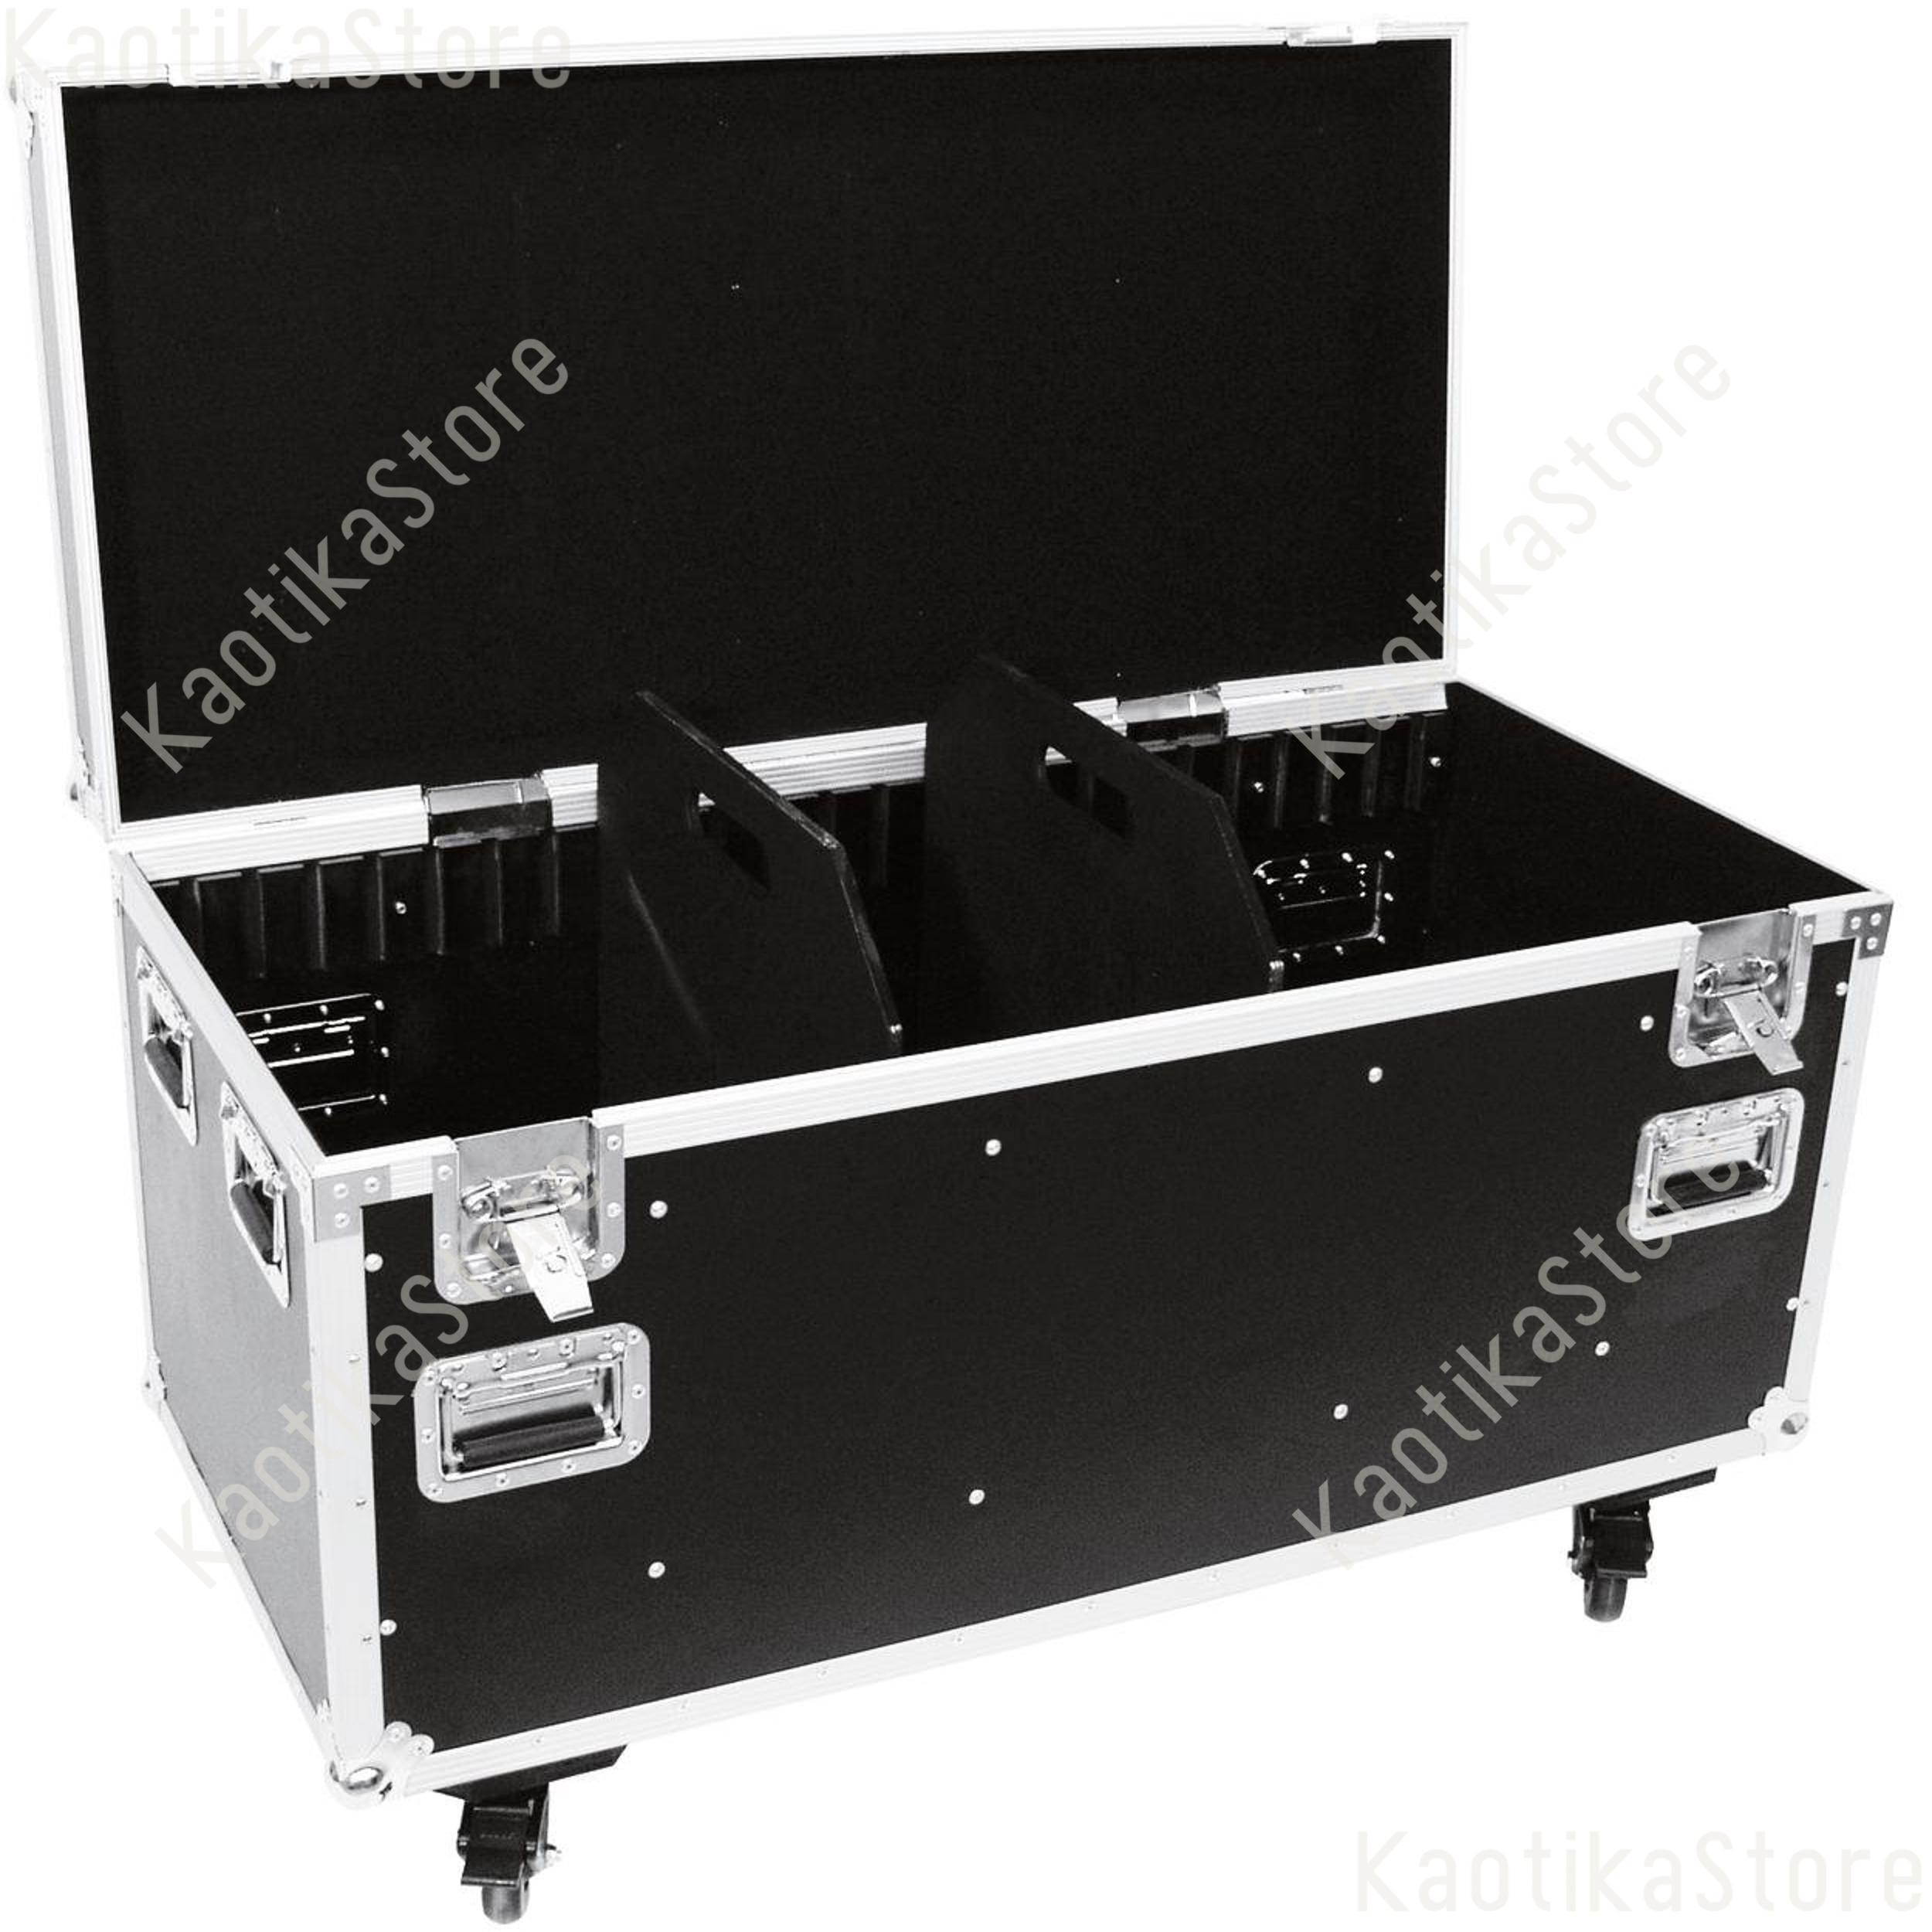 flightcase per trasporto con ruote 1250x600x780mm baule. Black Bedroom Furniture Sets. Home Design Ideas